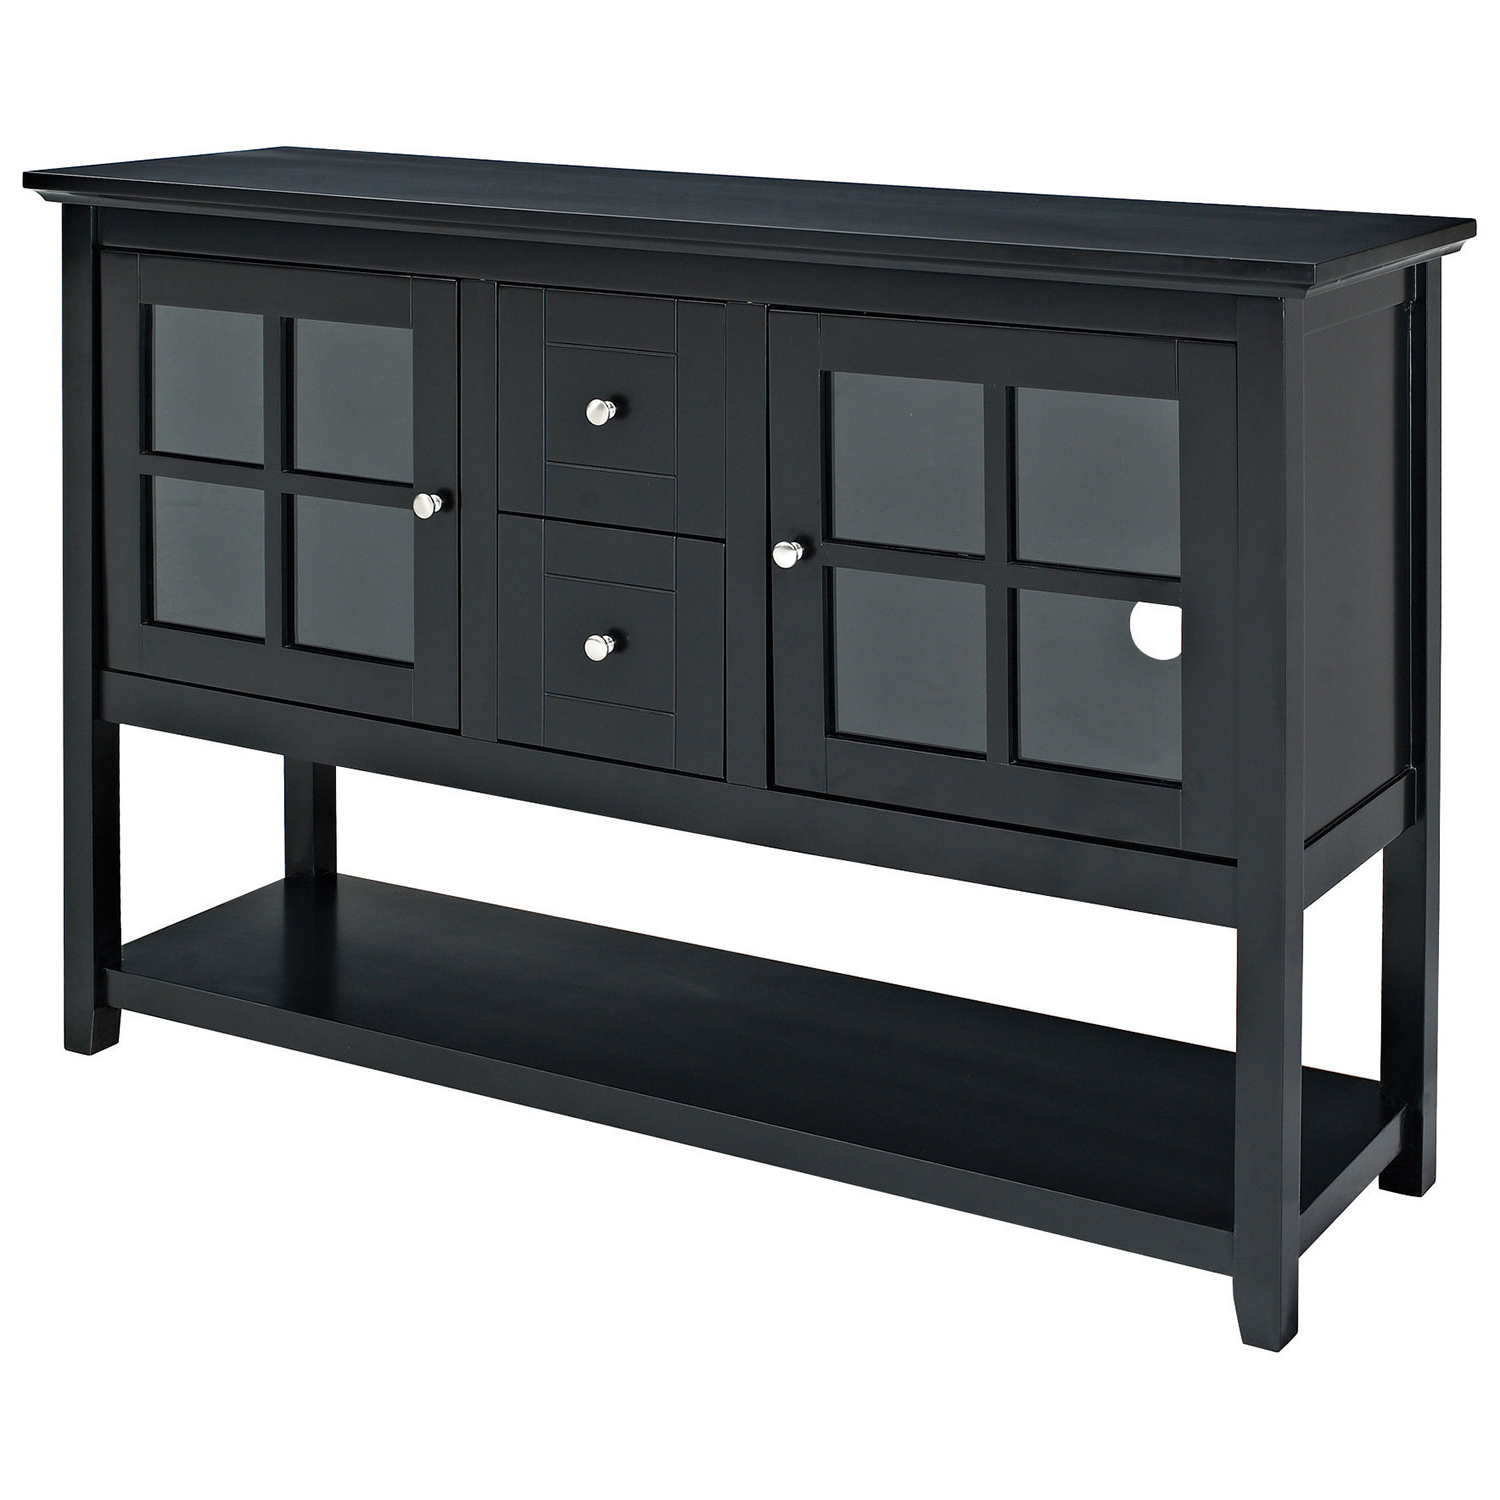 "Black Tv Stands With Drawers Intended For Current Walker Edison 55"" Console Tv Stand – Black : Tv Stands – Best Buy Canada (View 19 of 20)"